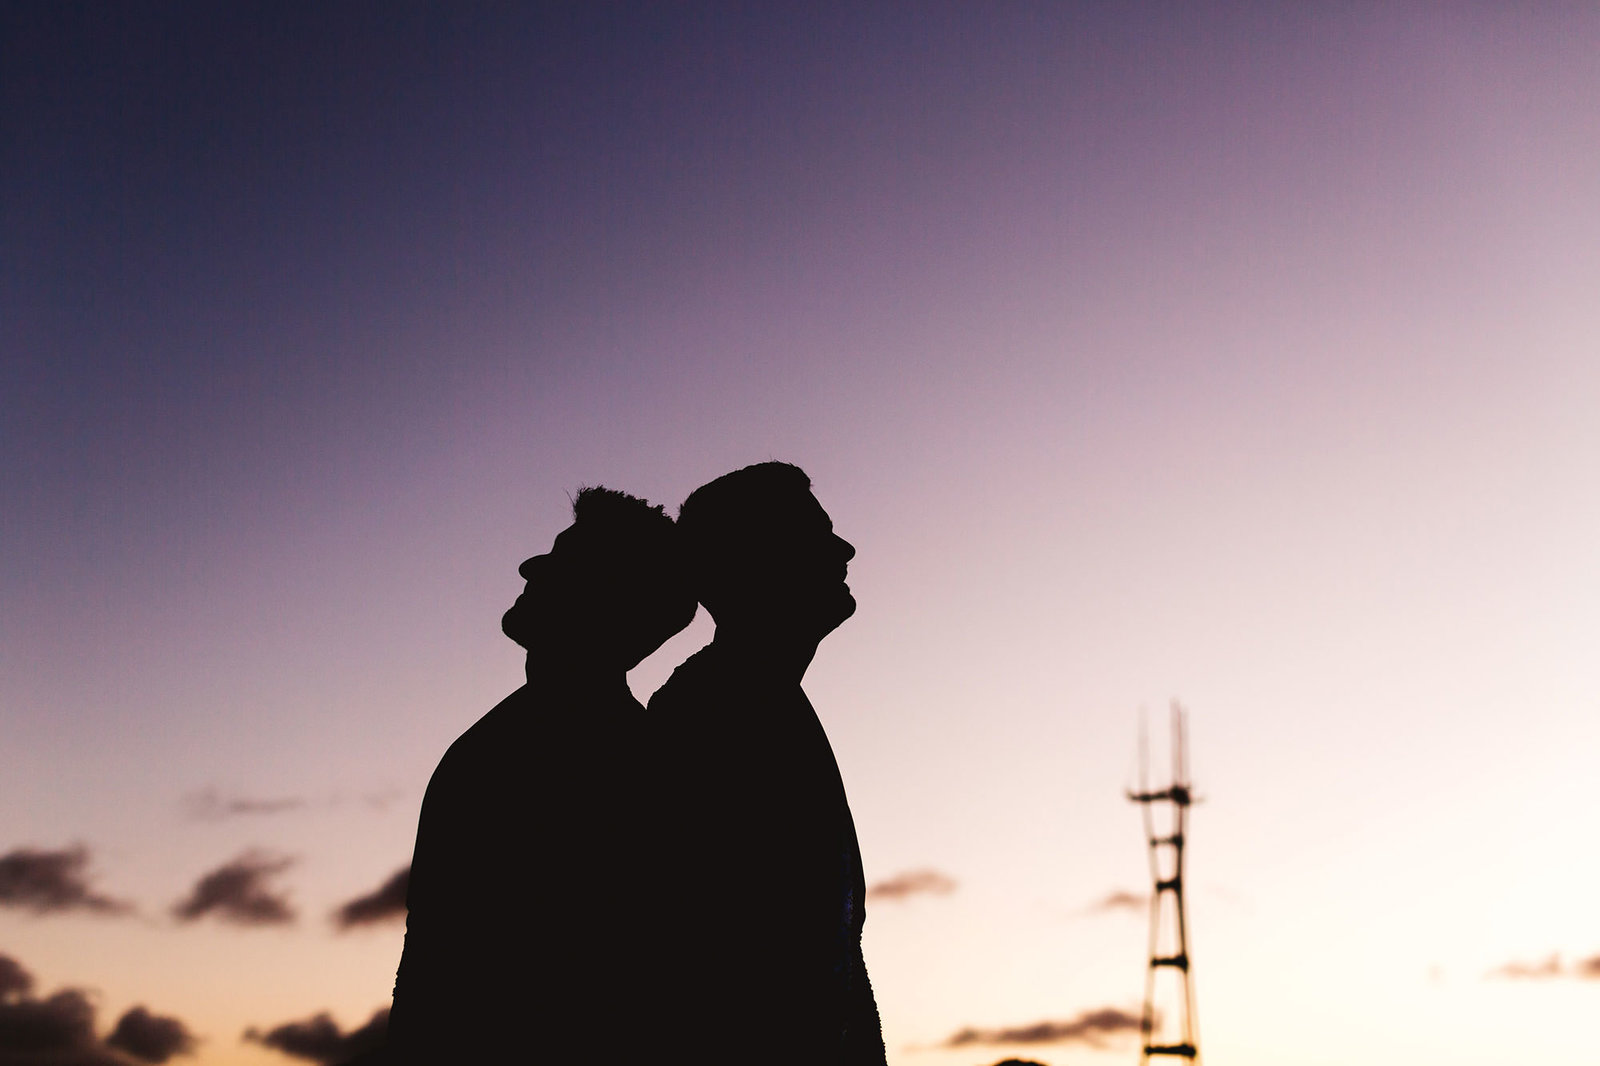 silhouette of two guys in love with sutro tour behind them